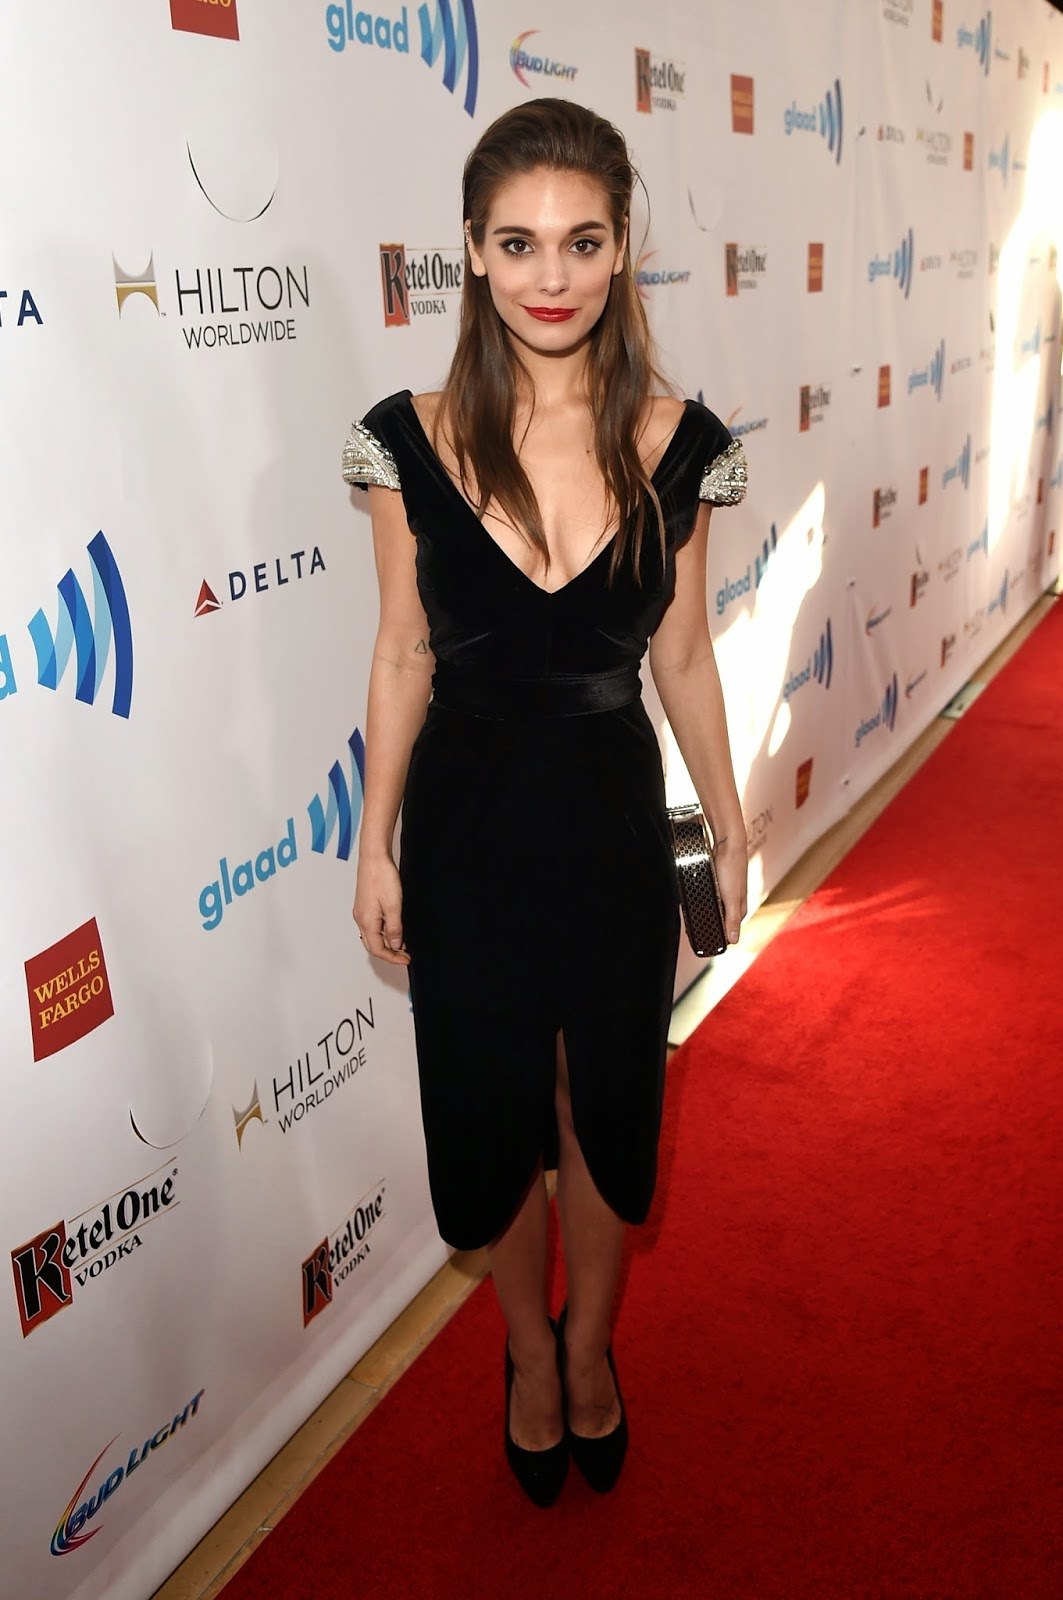 Caitlin Stasey shows off cleavage at the 2014 GLAAD Media Awards in LA